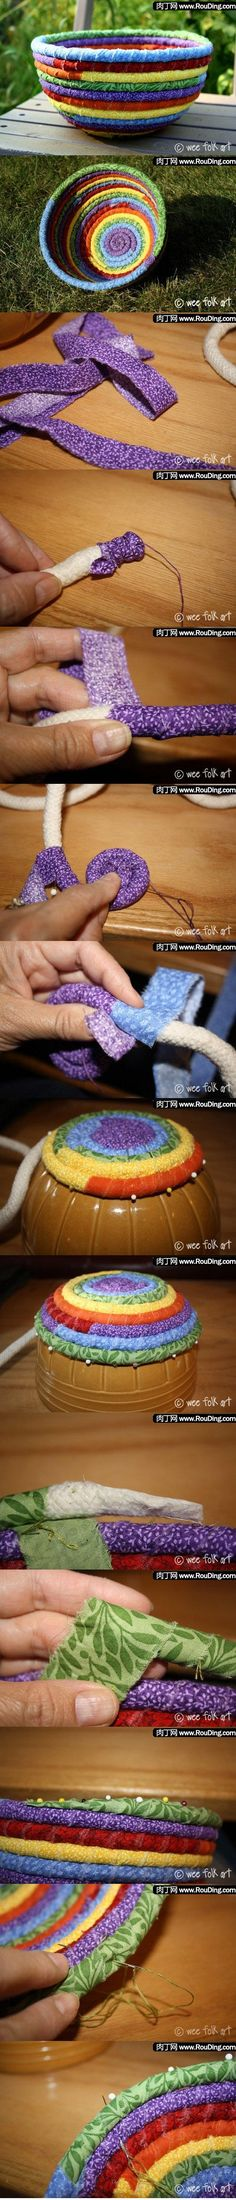 Crafty Ideas / How to make a decorative fabric bowl. cool